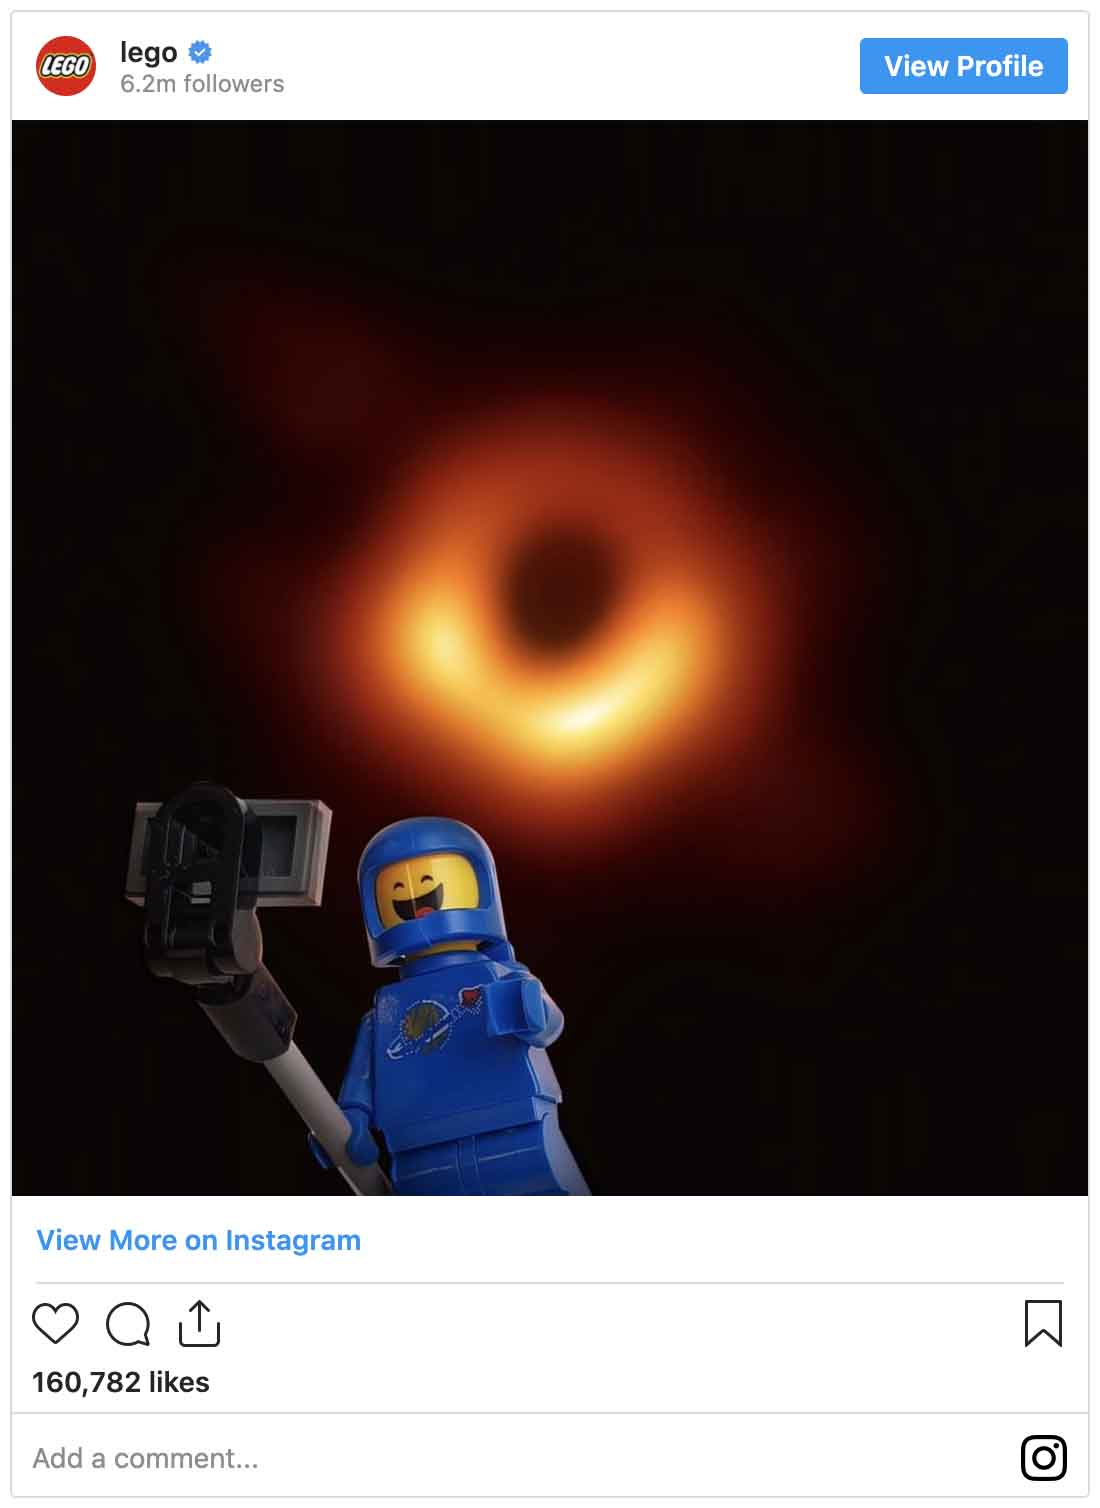 Instagram ads examples — LEGO